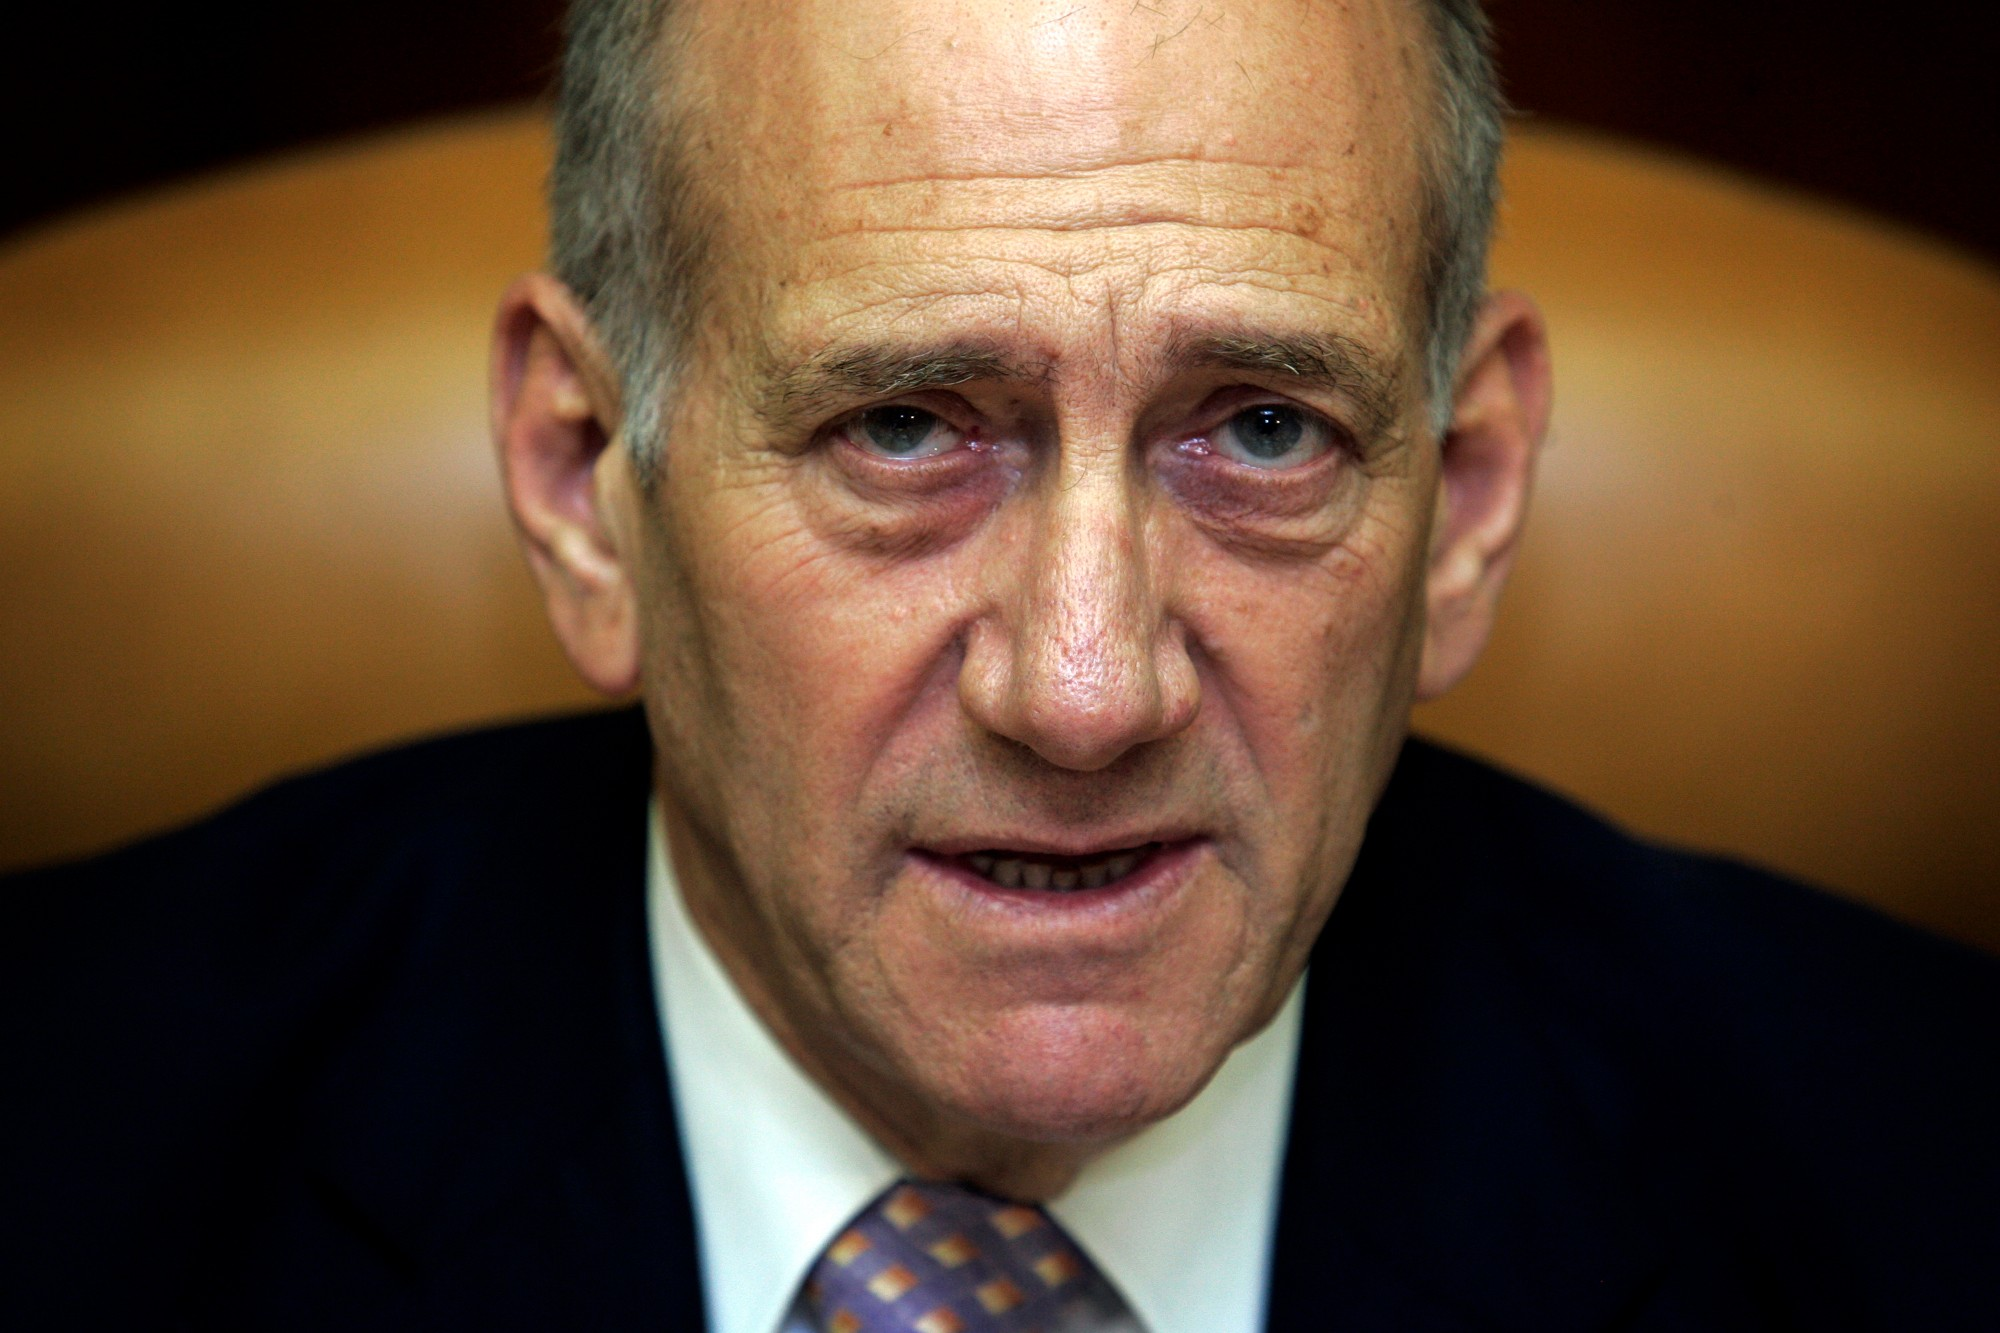 Poll: Israelis Don't Want Olmert